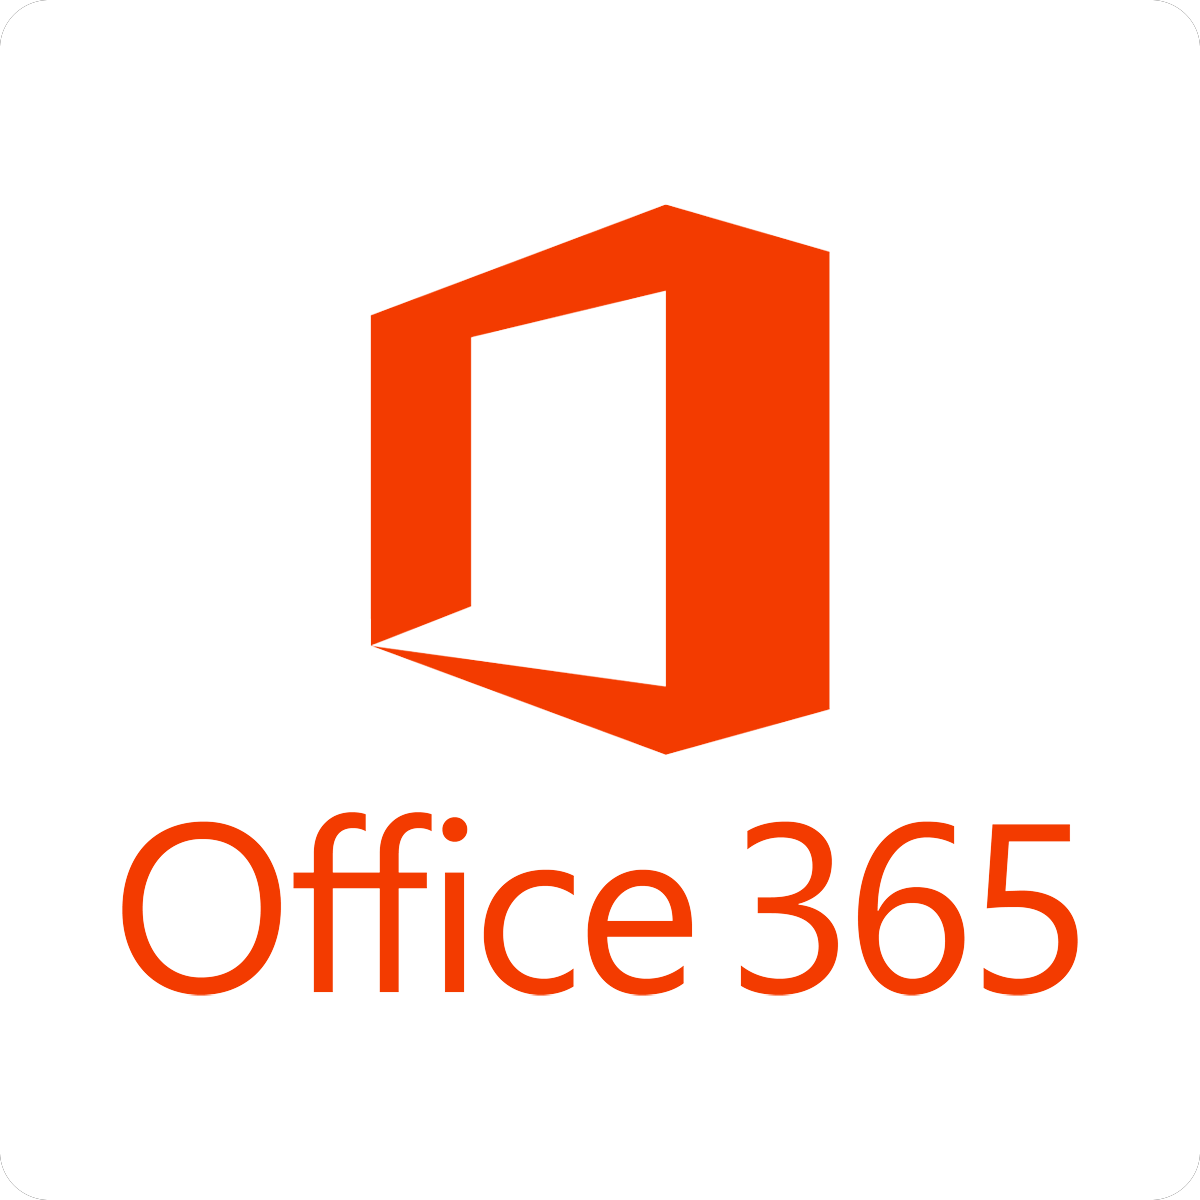 Enabling Modern Authentication on Office 365 - Aerrow